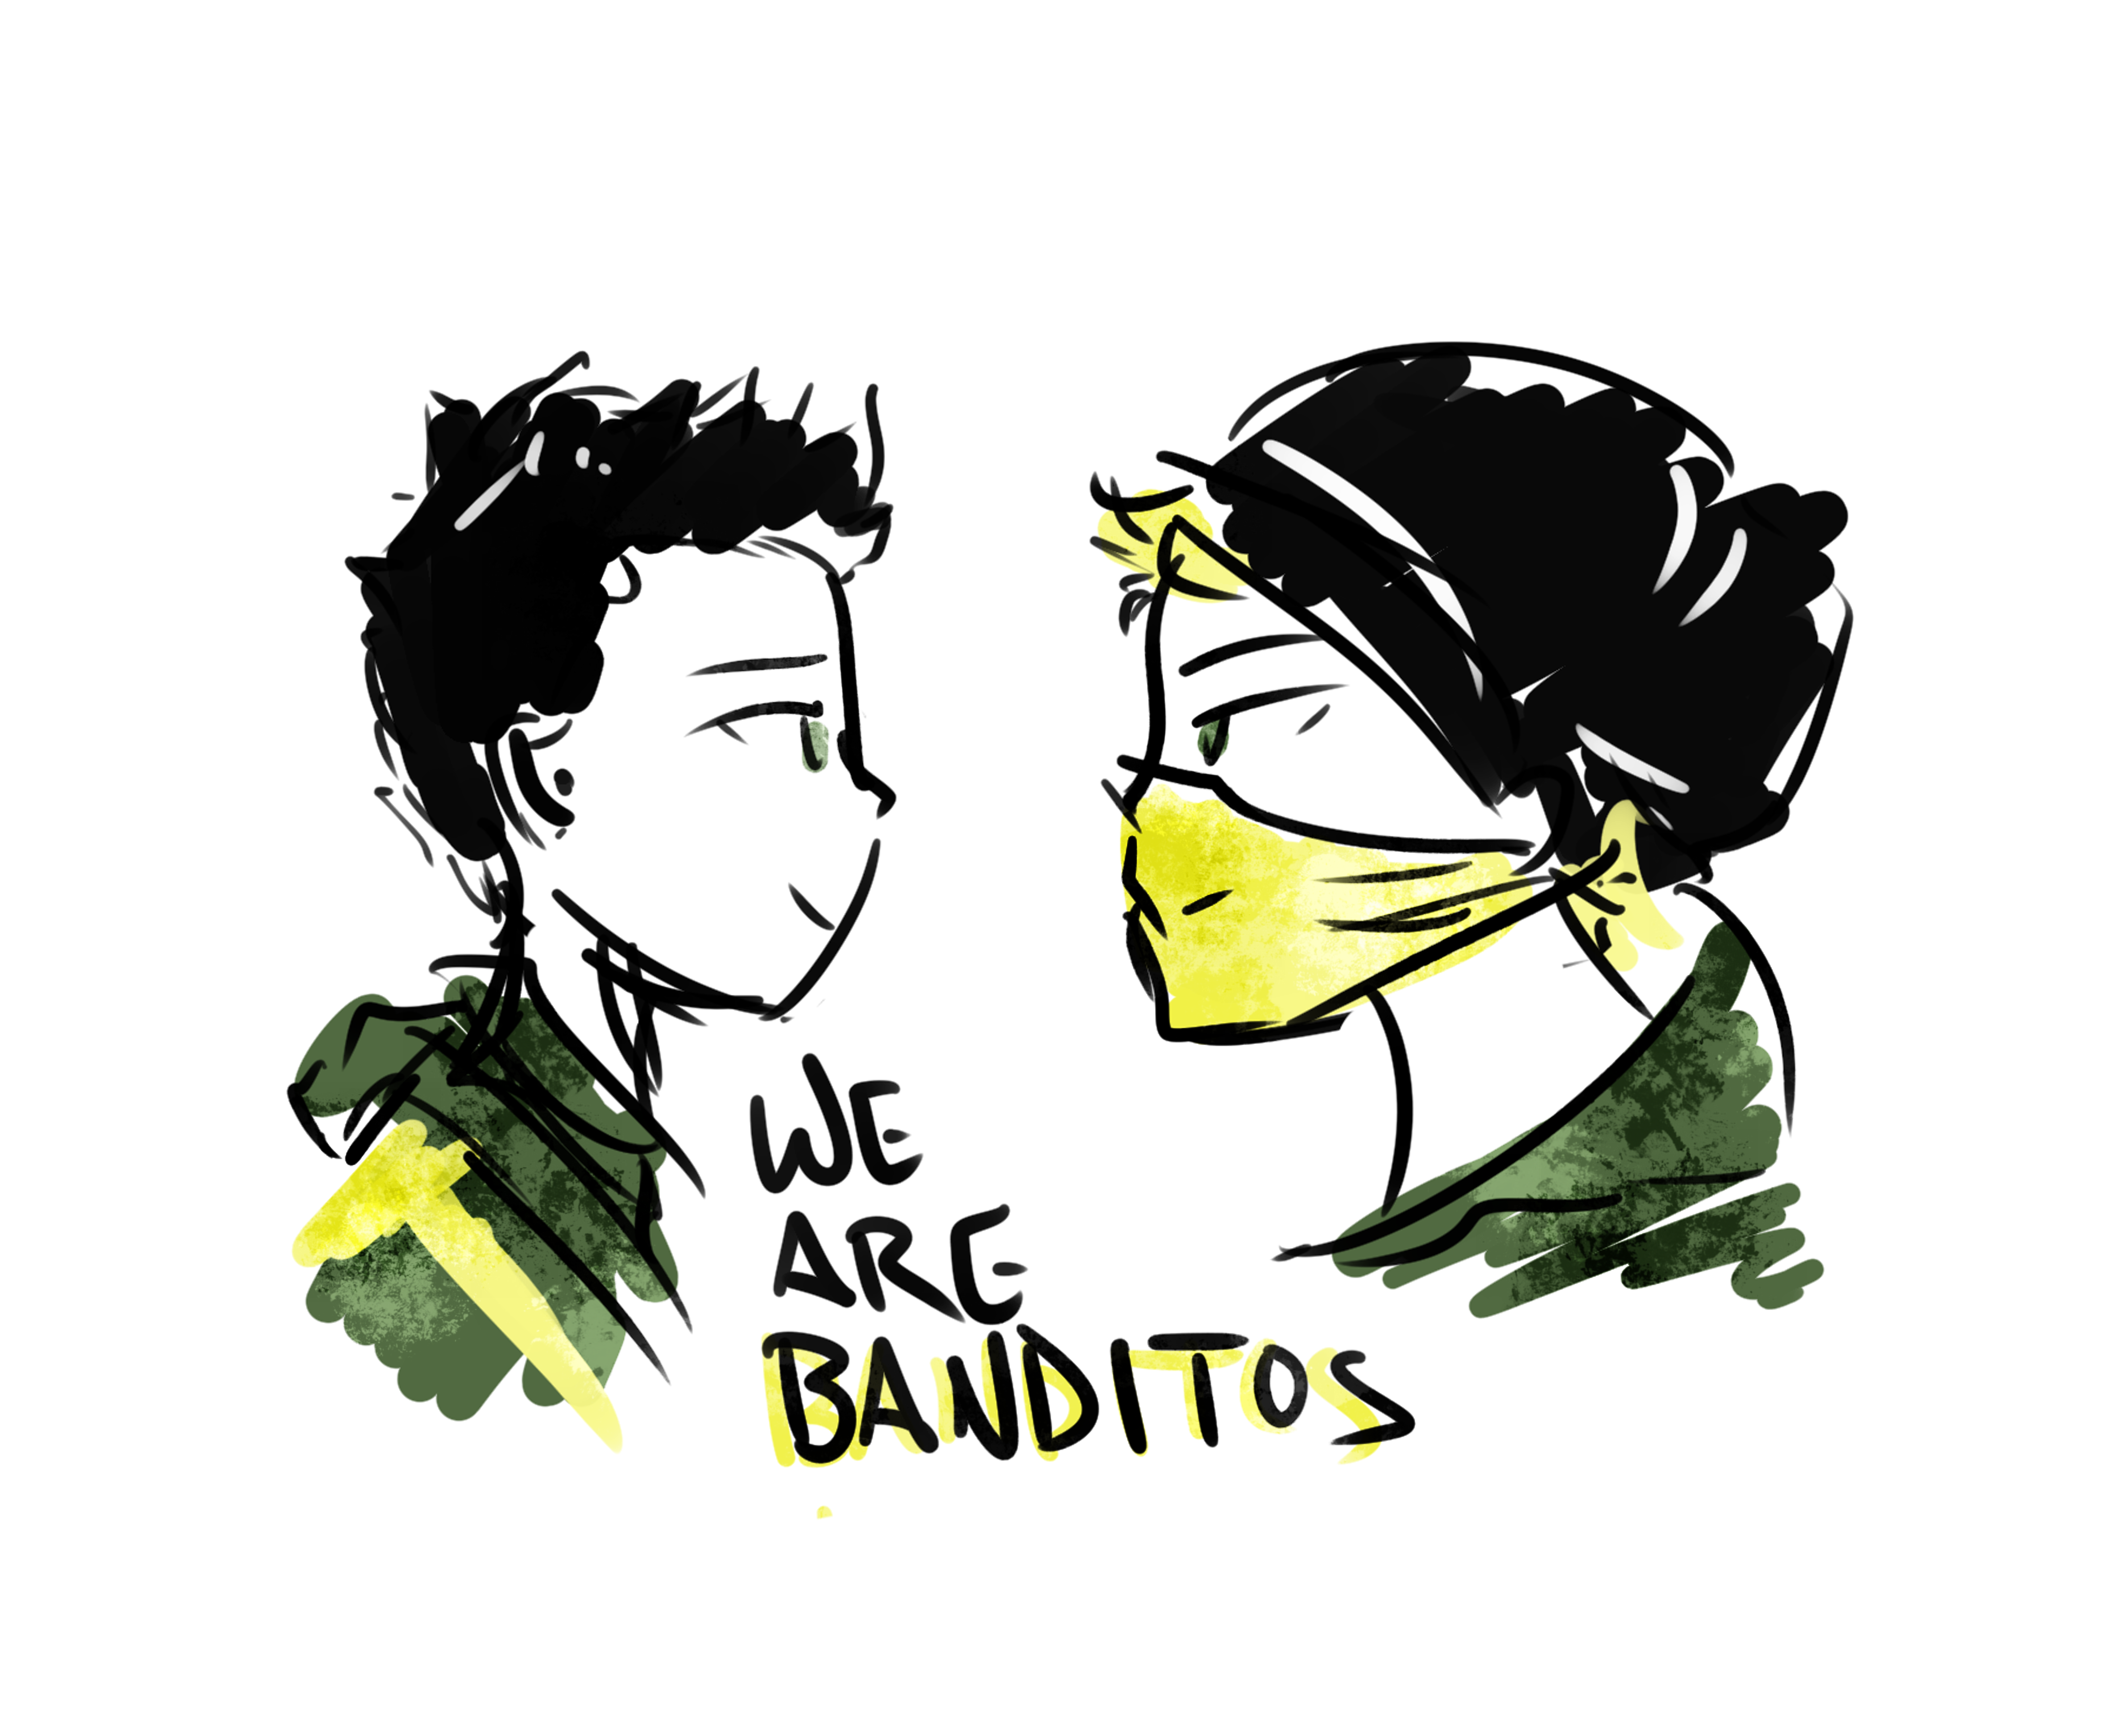 Drawing songs twenty one. We are banditos my